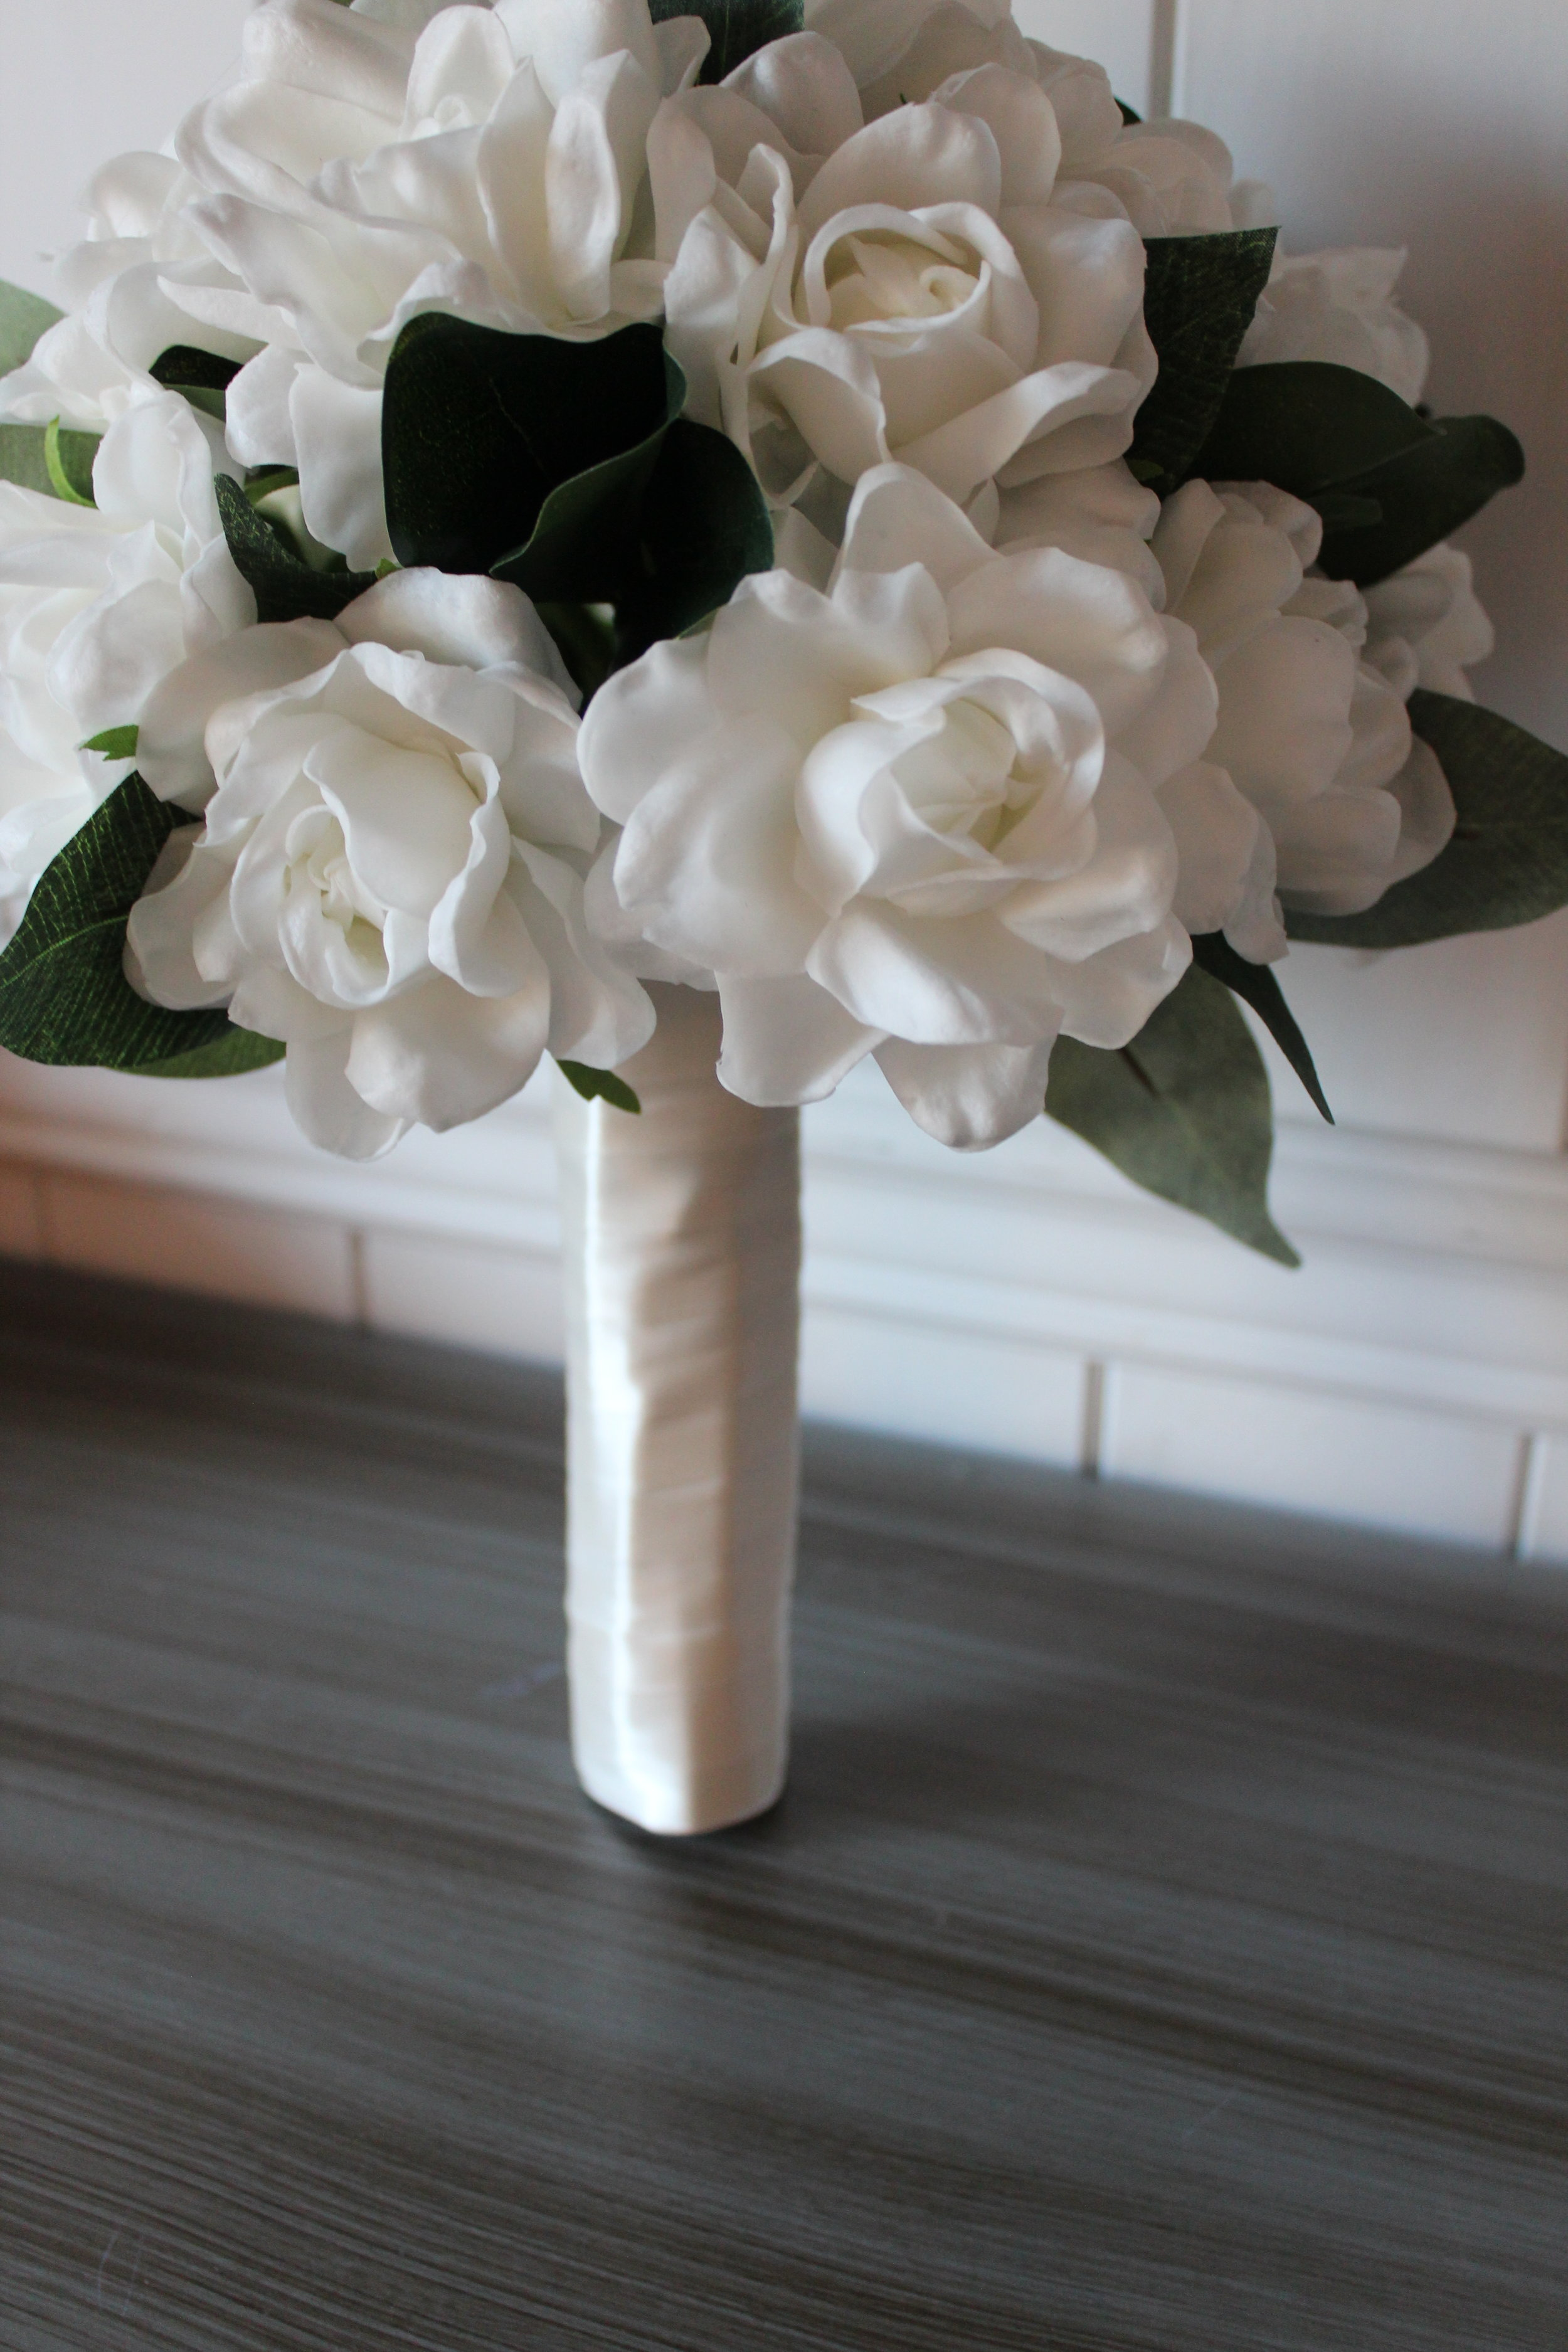 wedding-bouquet-preservation-fail-silk-flowers-recreation.jpg